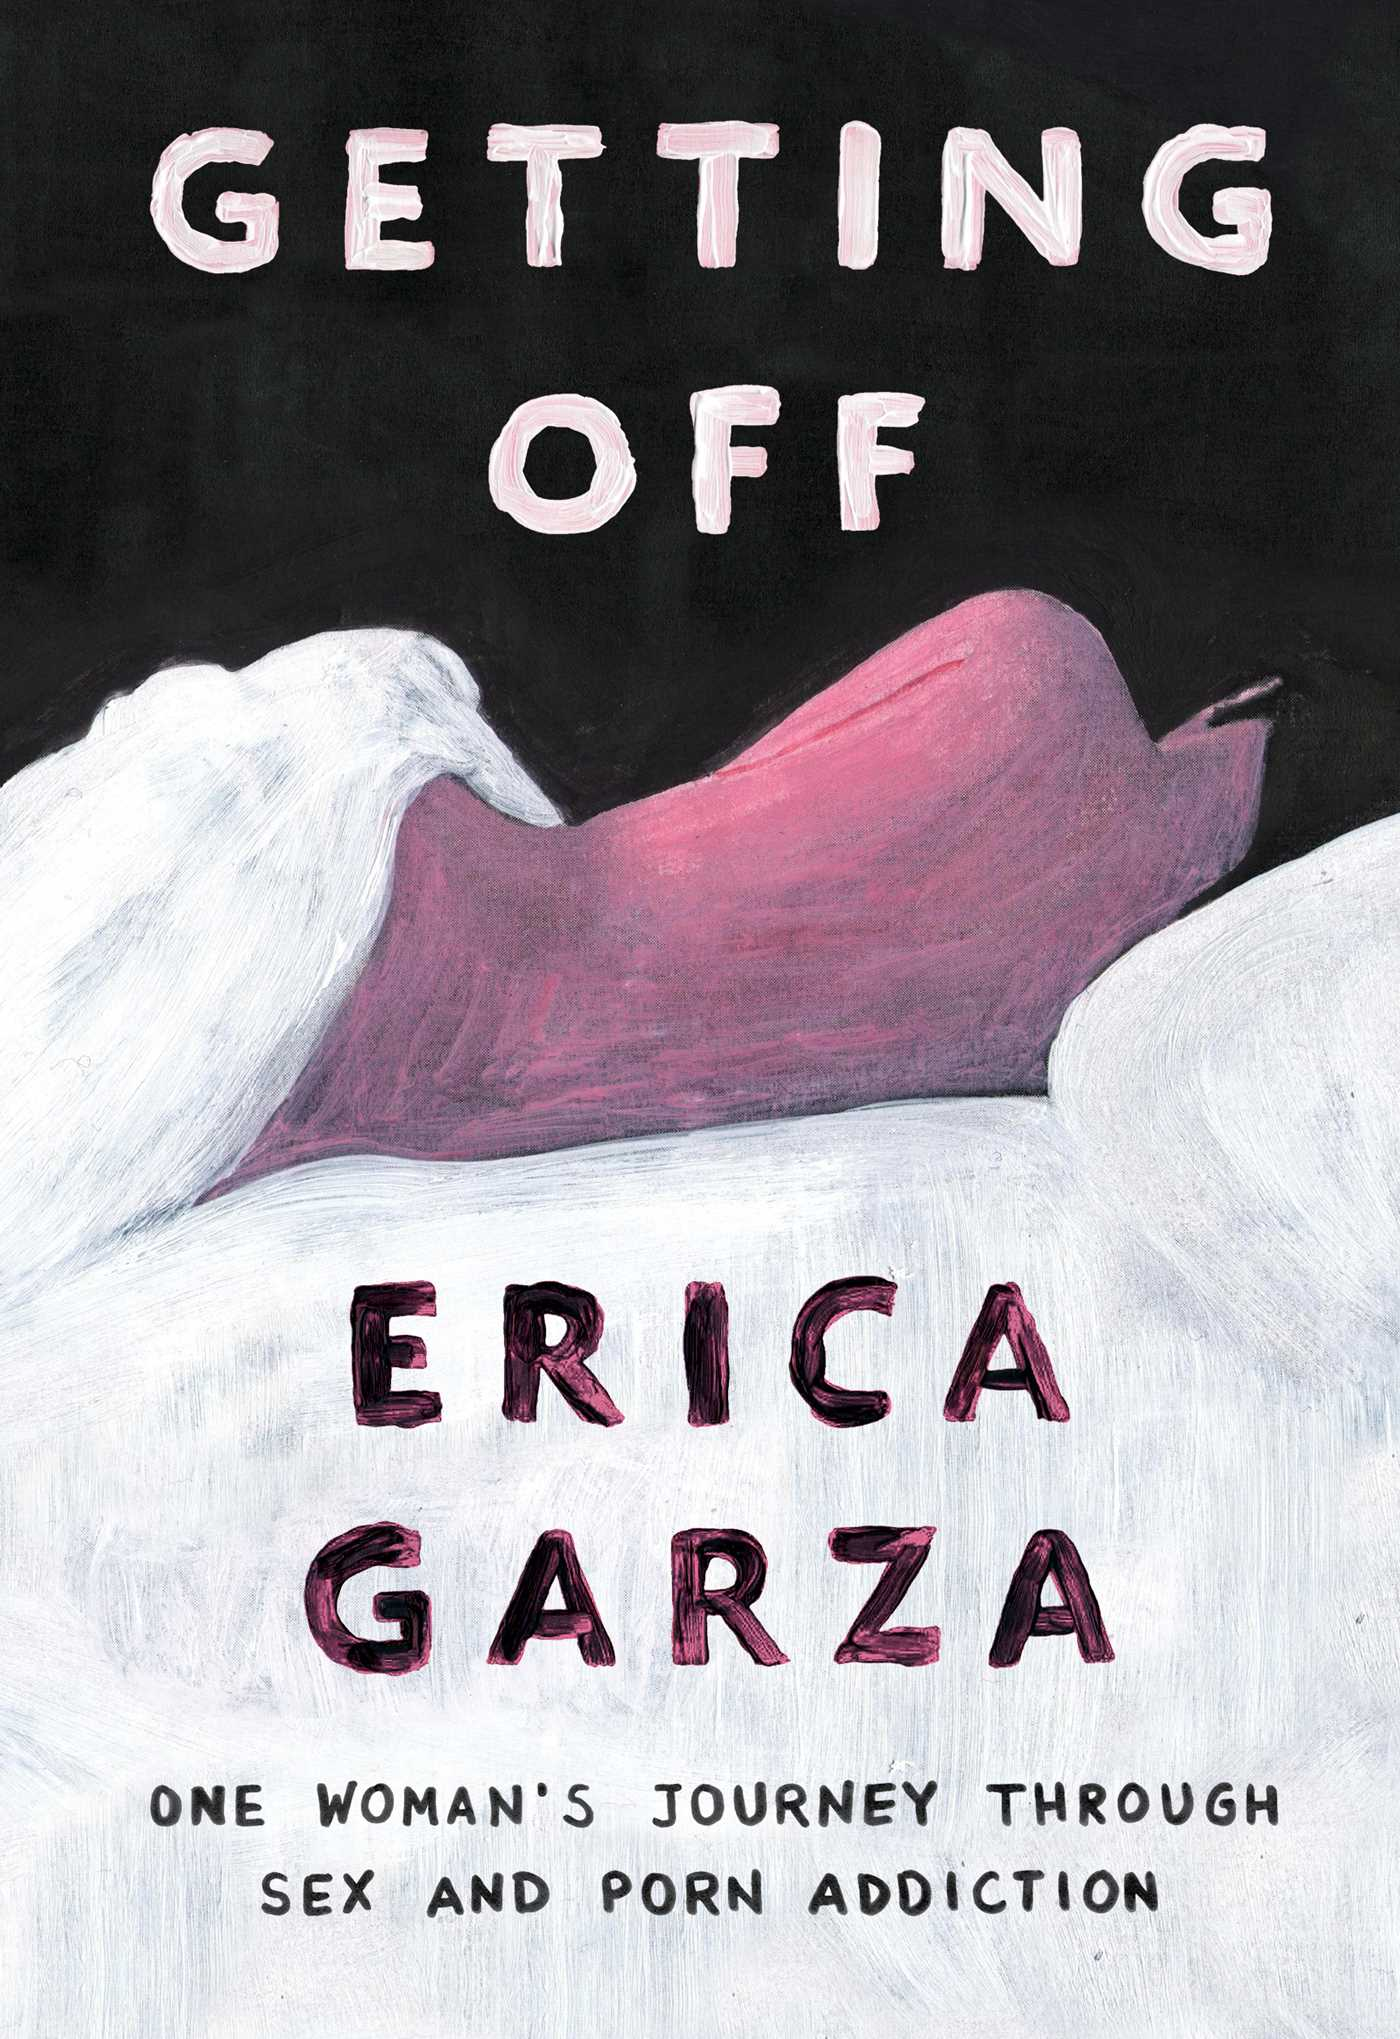 Getting f Book by Erica Garza ficial Publisher Page